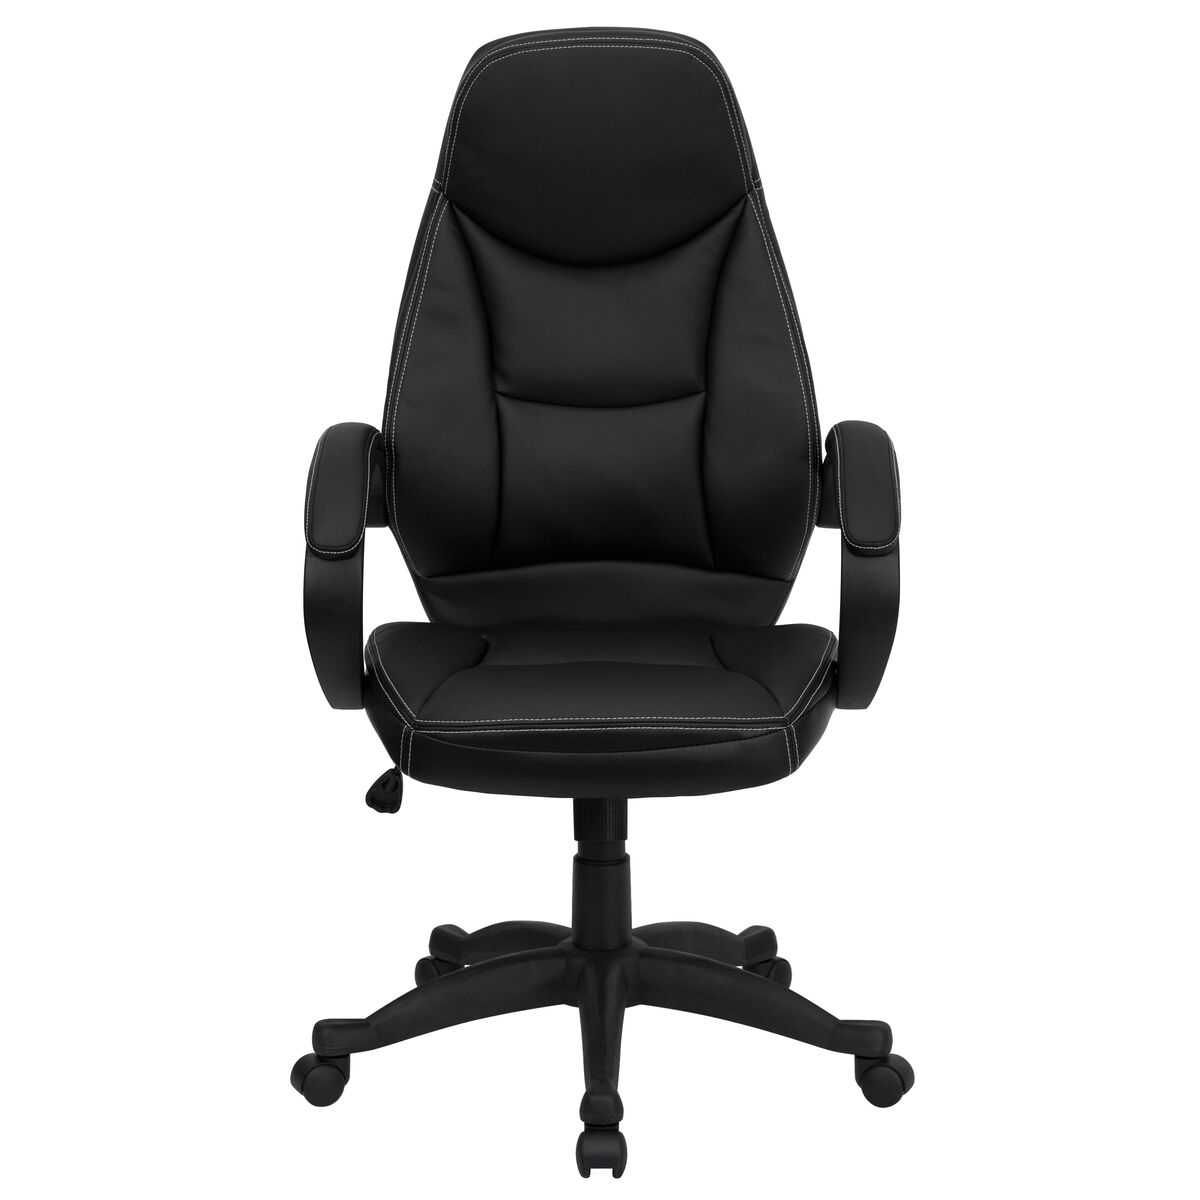 Flash furniture h hlc 0005 high 1b gg for H furniture ww chair